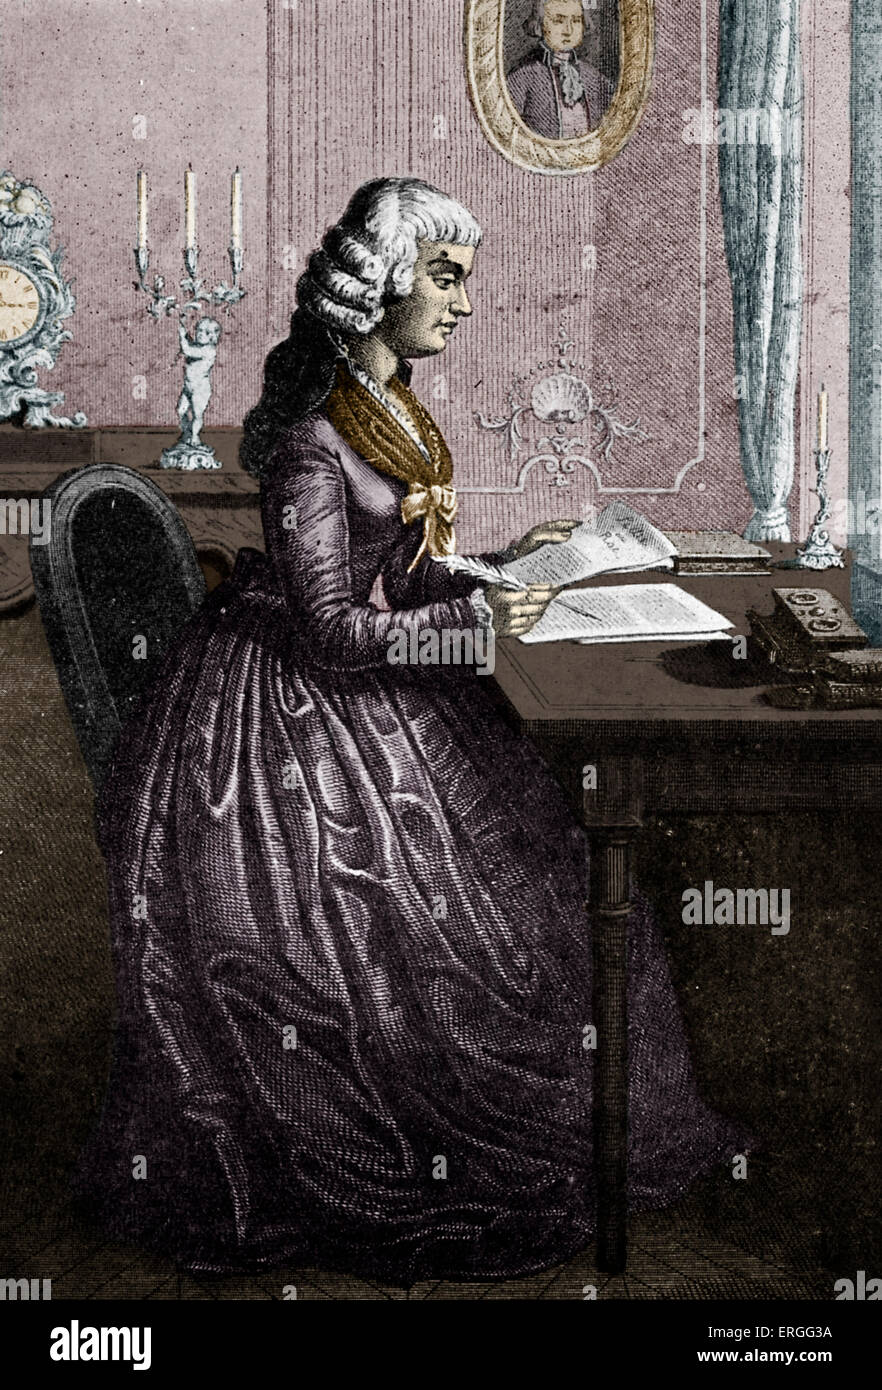 Madame Roland writing a letter to Louis XVI of France. Supporter of the French Revolution and influential member - Stock Image